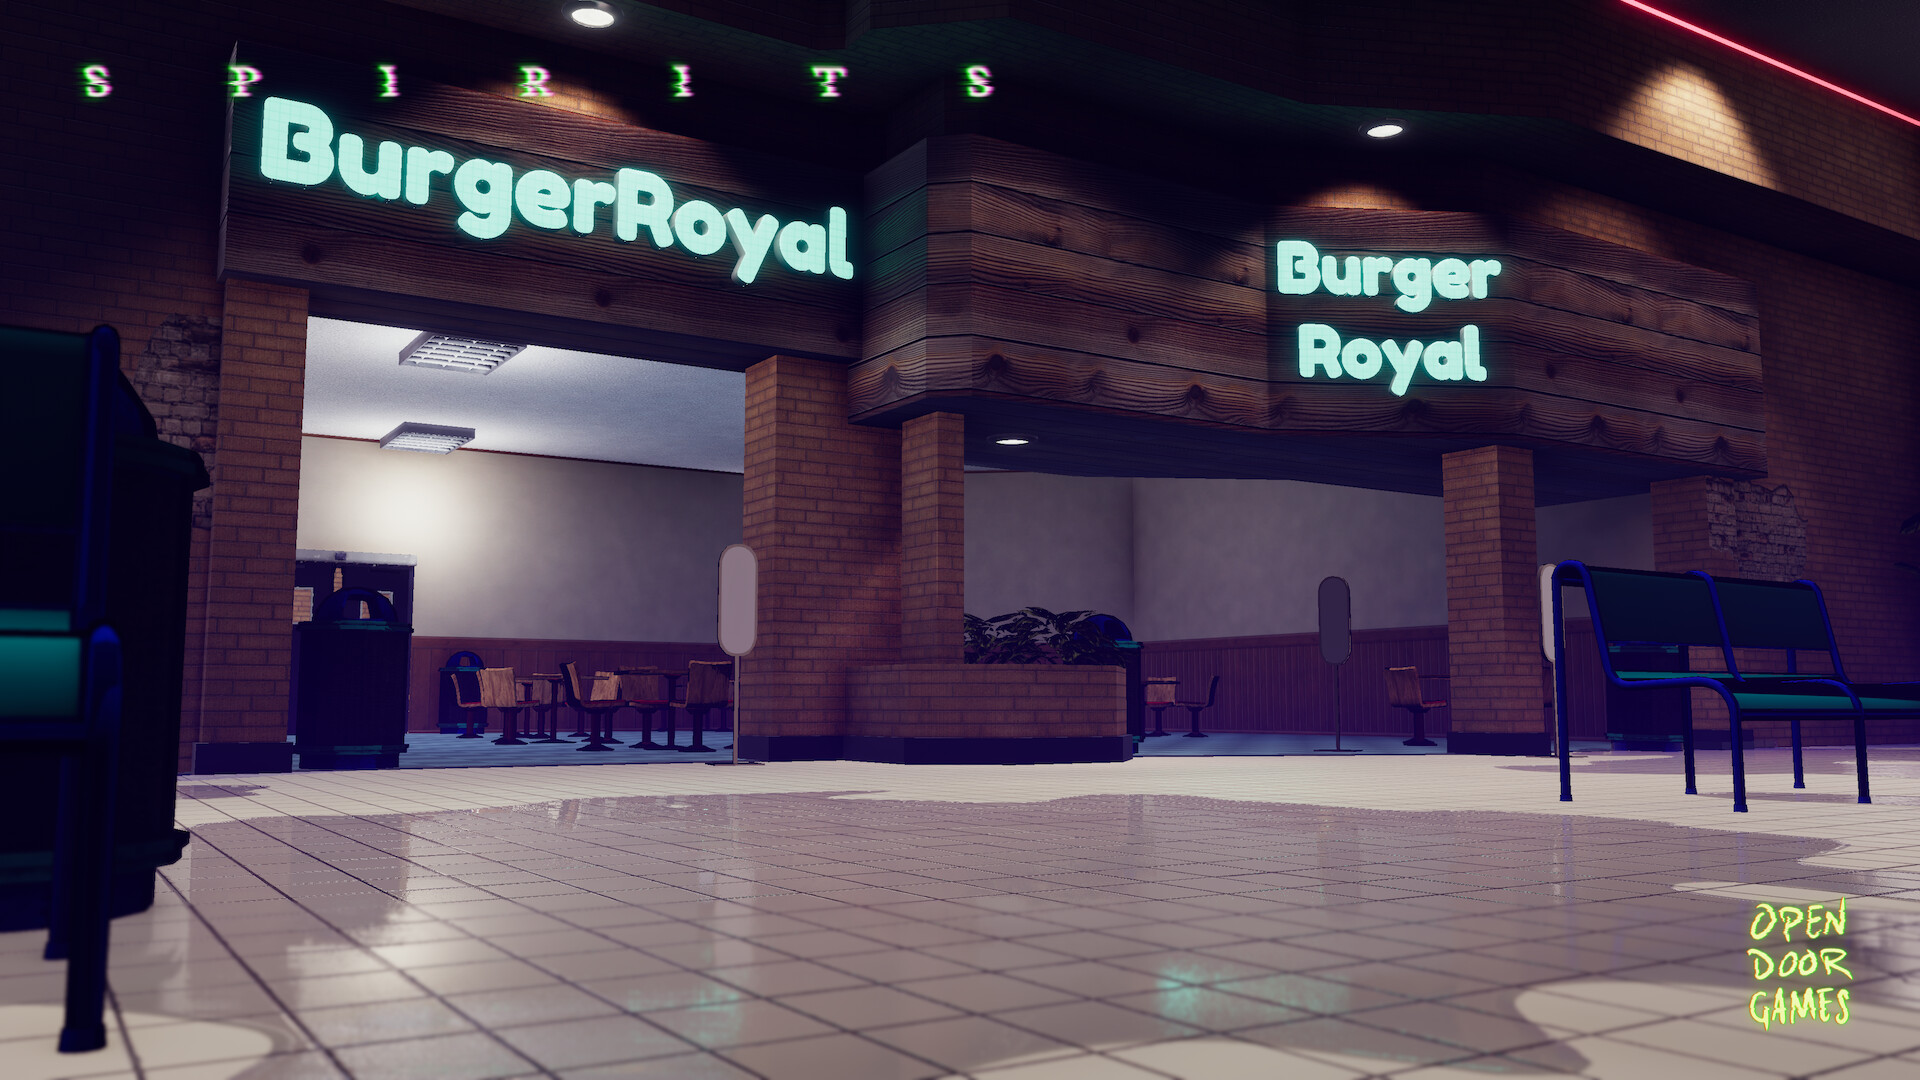 Burger royal is a throwback to classic 80's Burger King